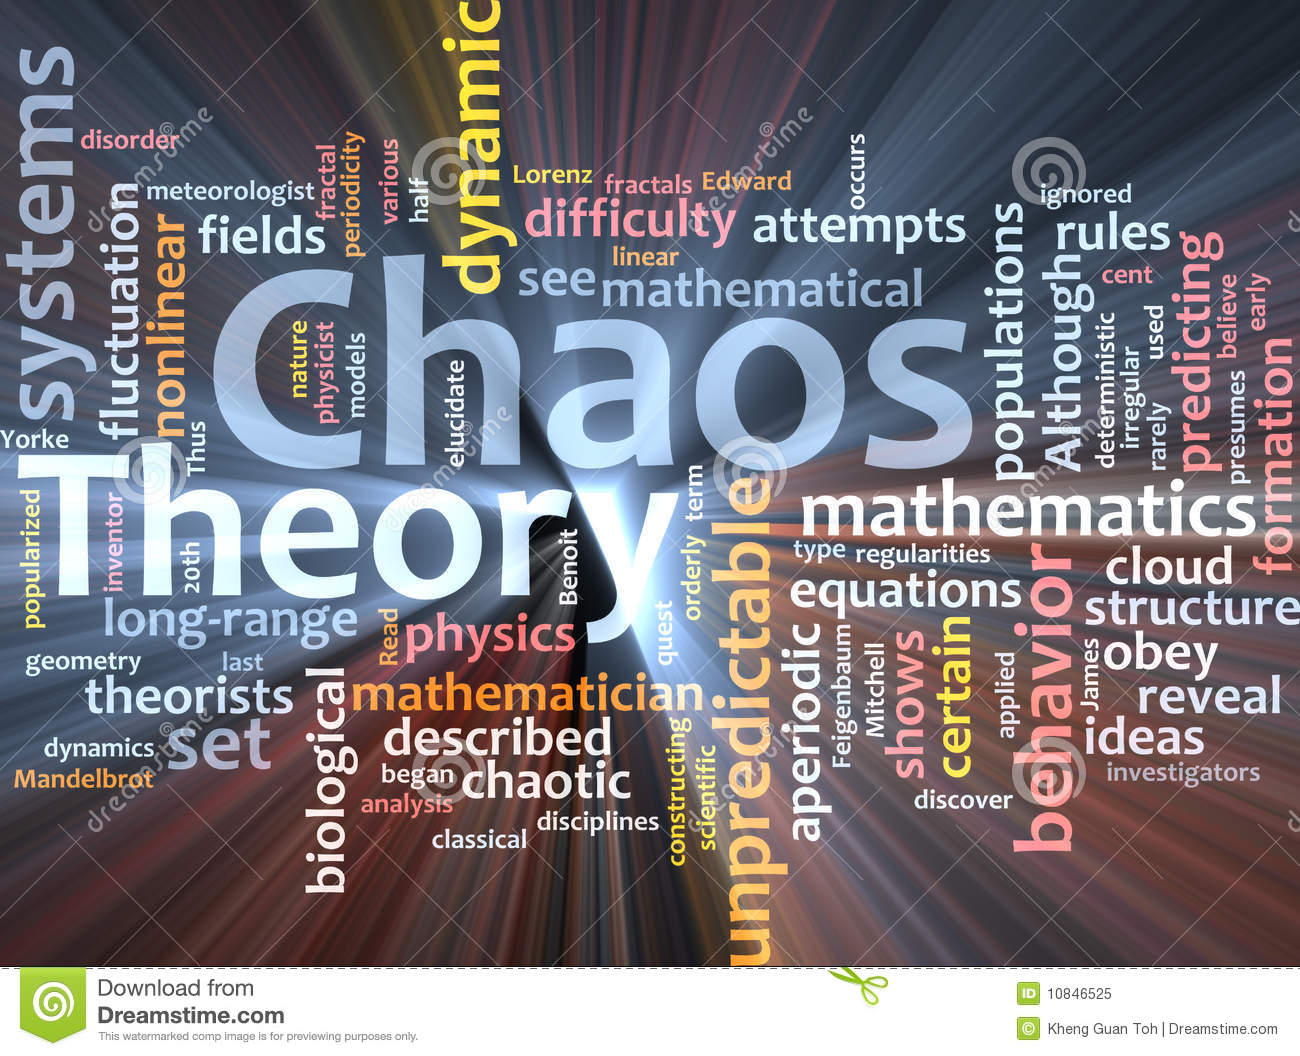 an analysis of the collapse of the park by the use of the chaos theory by dr malcom Start studying soc final learn vocabulary d chaos theory c the lesson to be taken from malcom gladwell's example of the hockey players is what.